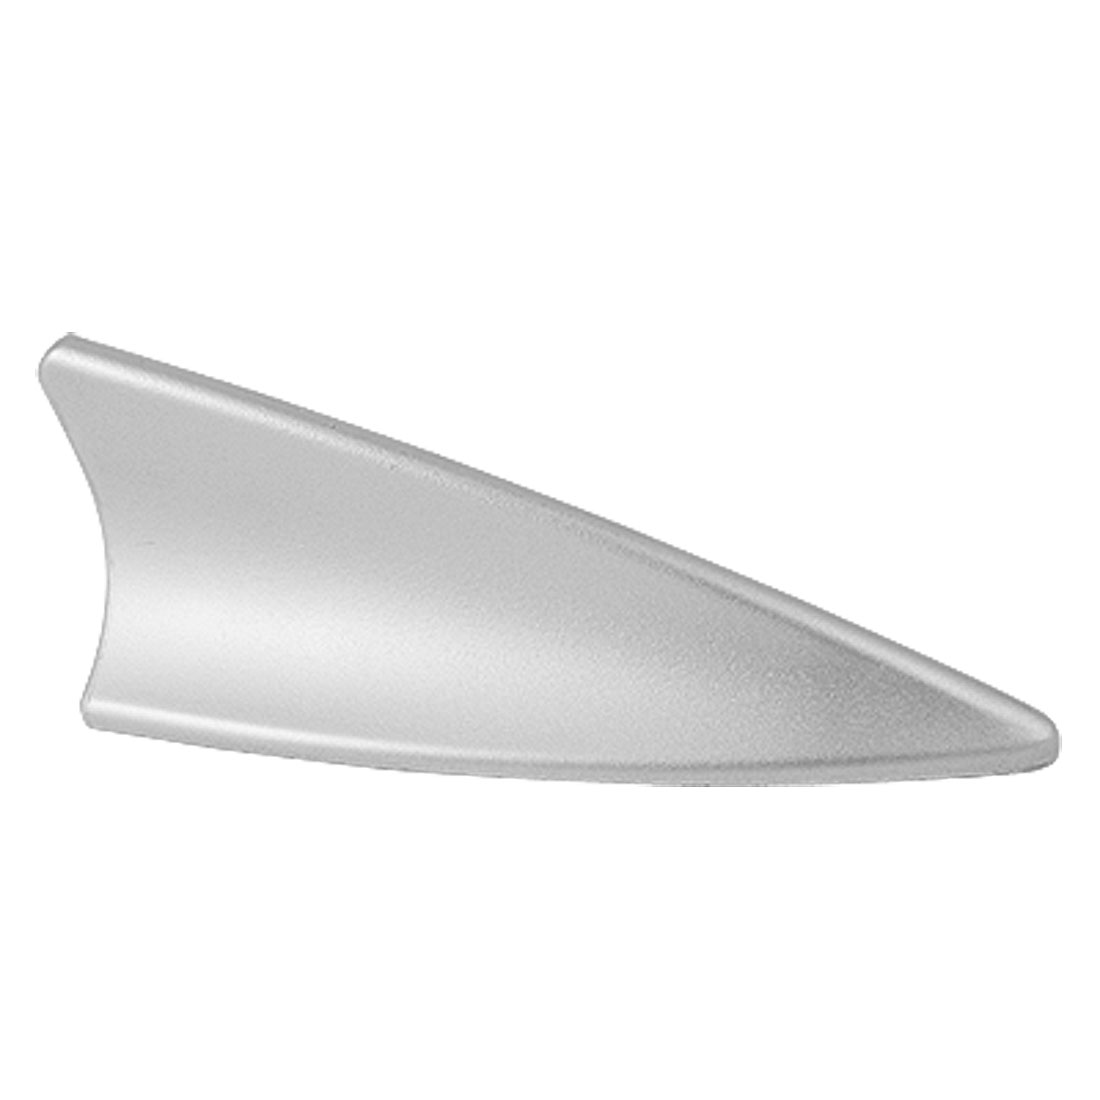 Silver Tone Plastic Shark Fin Designed Decor Antenna for Car Vehicle